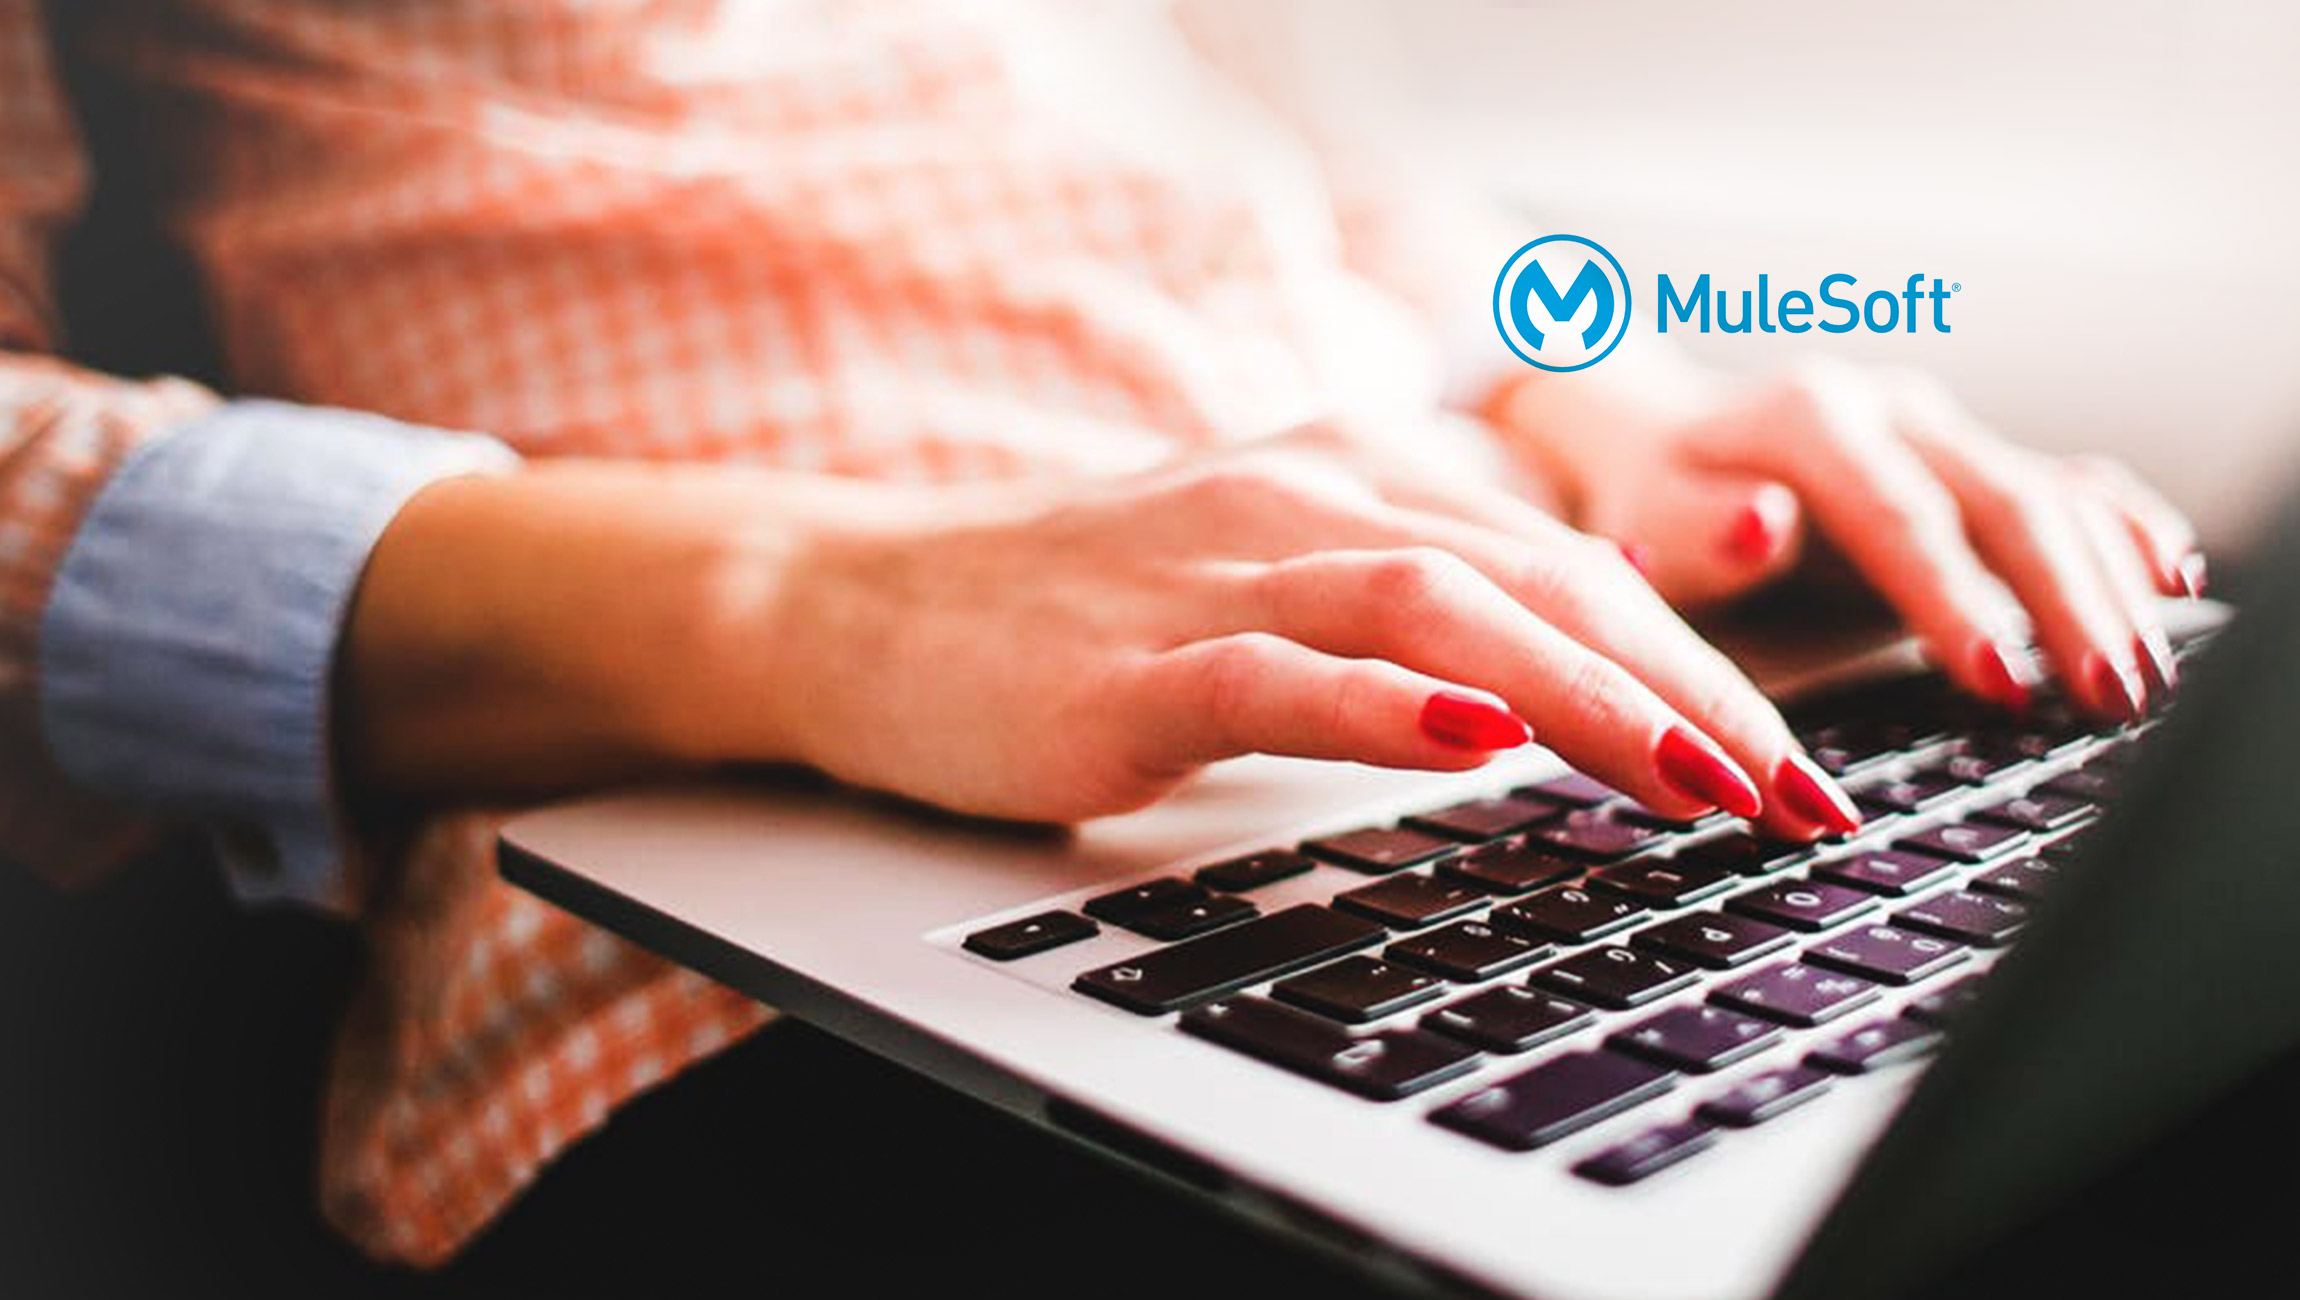 World's Largest Sports Retailer Runs on MuleSoft to Deliver Omnichannel Customer Experiences